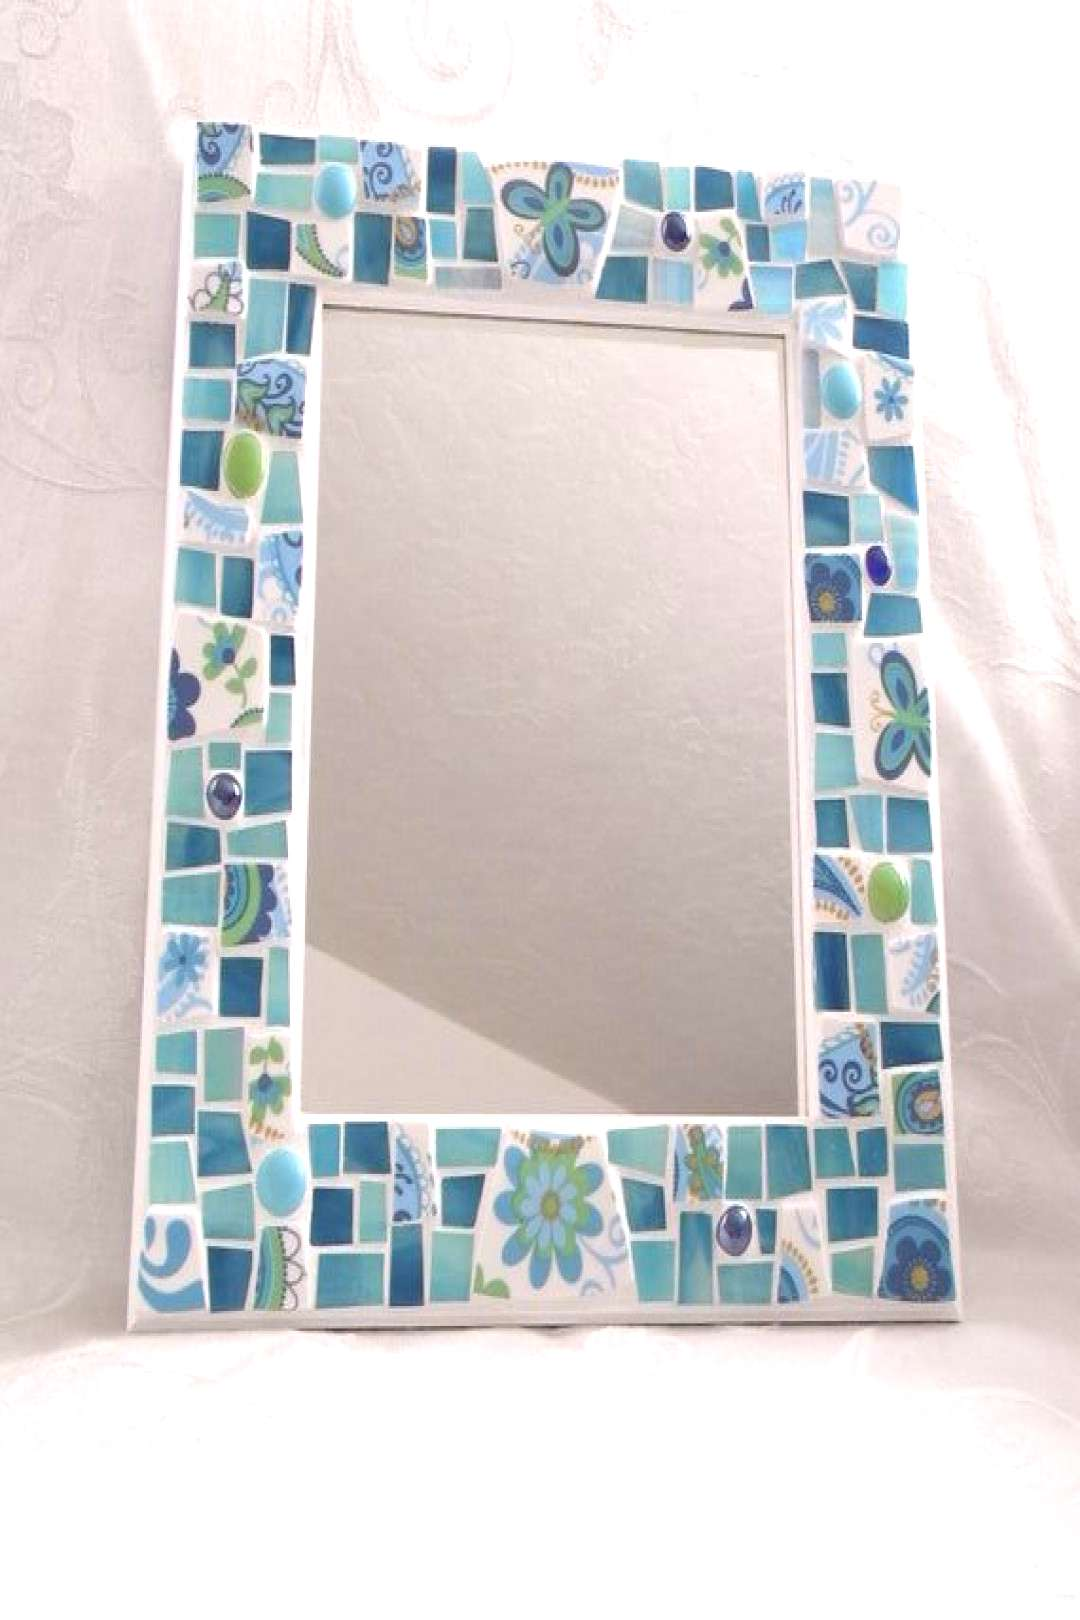 Mosaic Mirror - Butterflies and Flowers - Aqua and Turquoise Colors